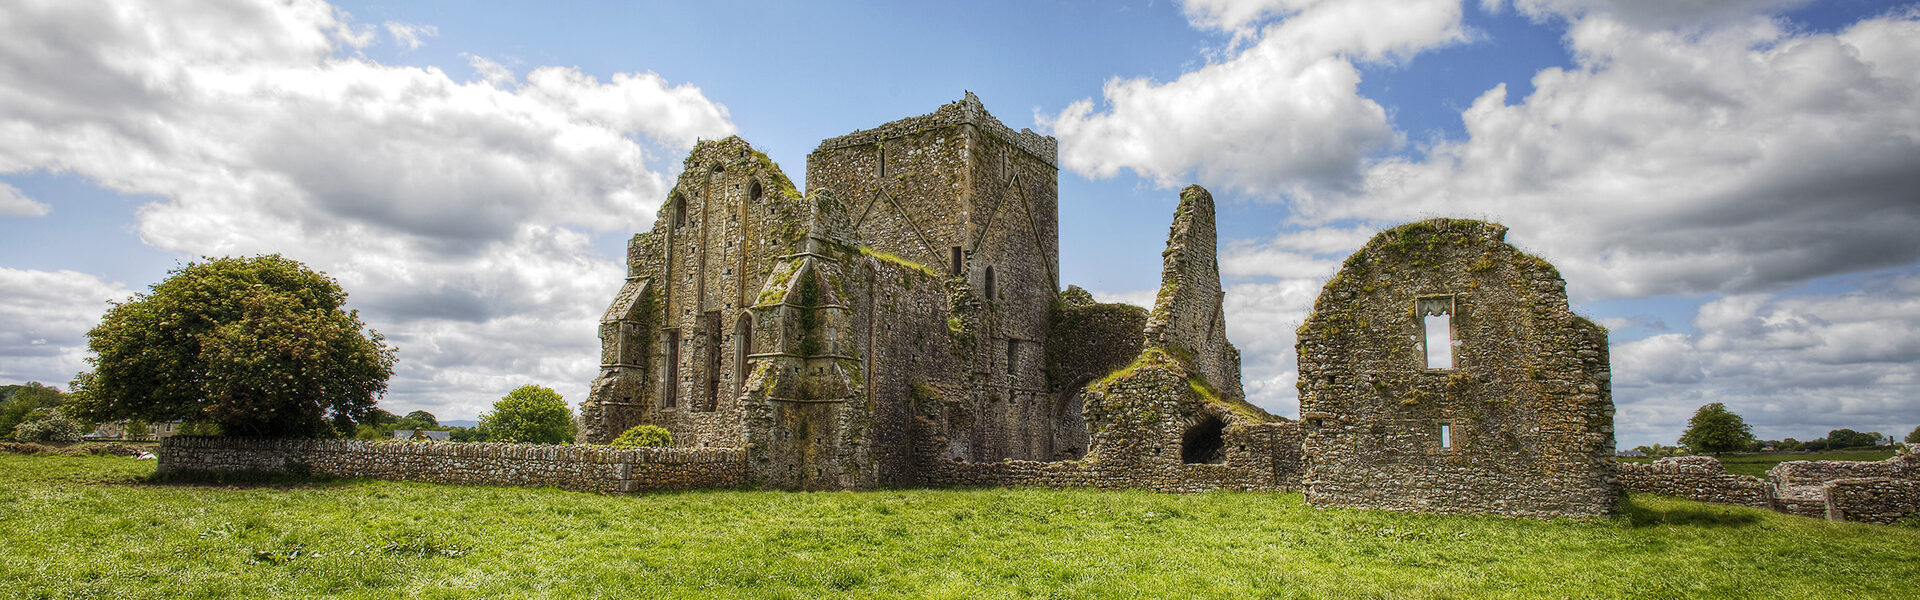 The Hore Abbey - Matthew and Heather - cc